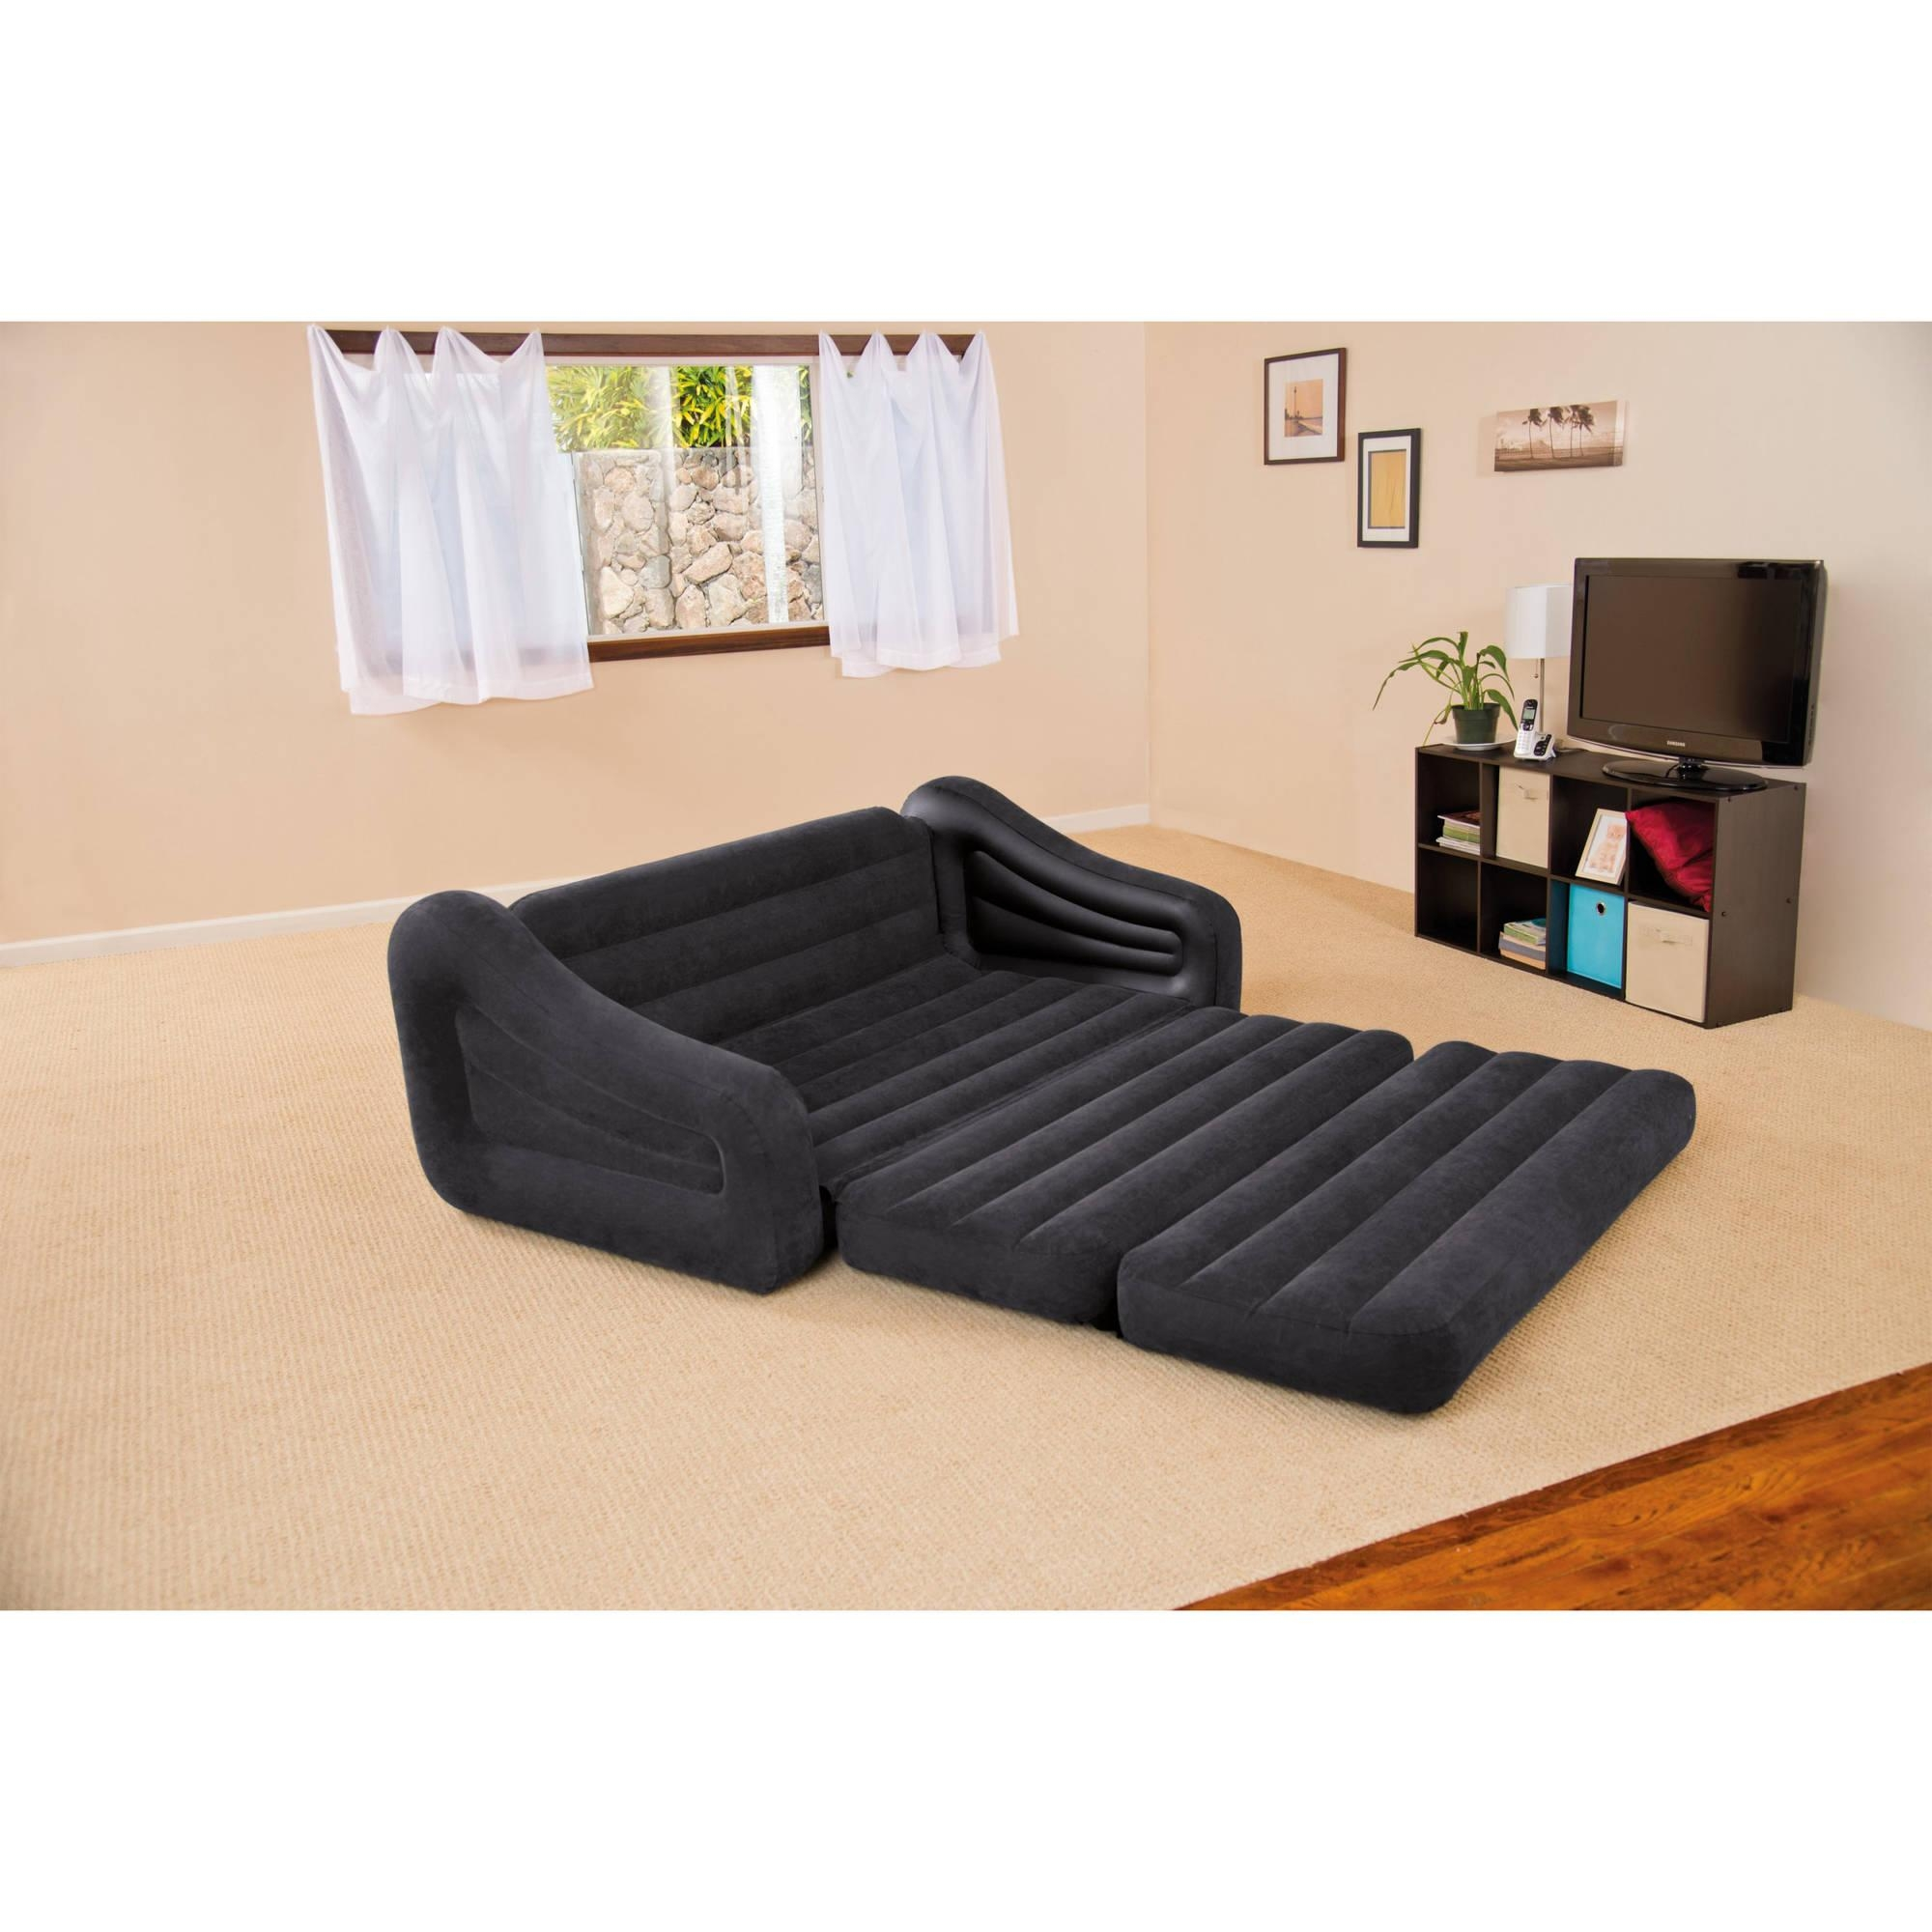 Intex Queen Inflatable Pull Out Sofa Bed – Walmart With Intex Inflatable Pull Out Sofas (View 13 of 20)